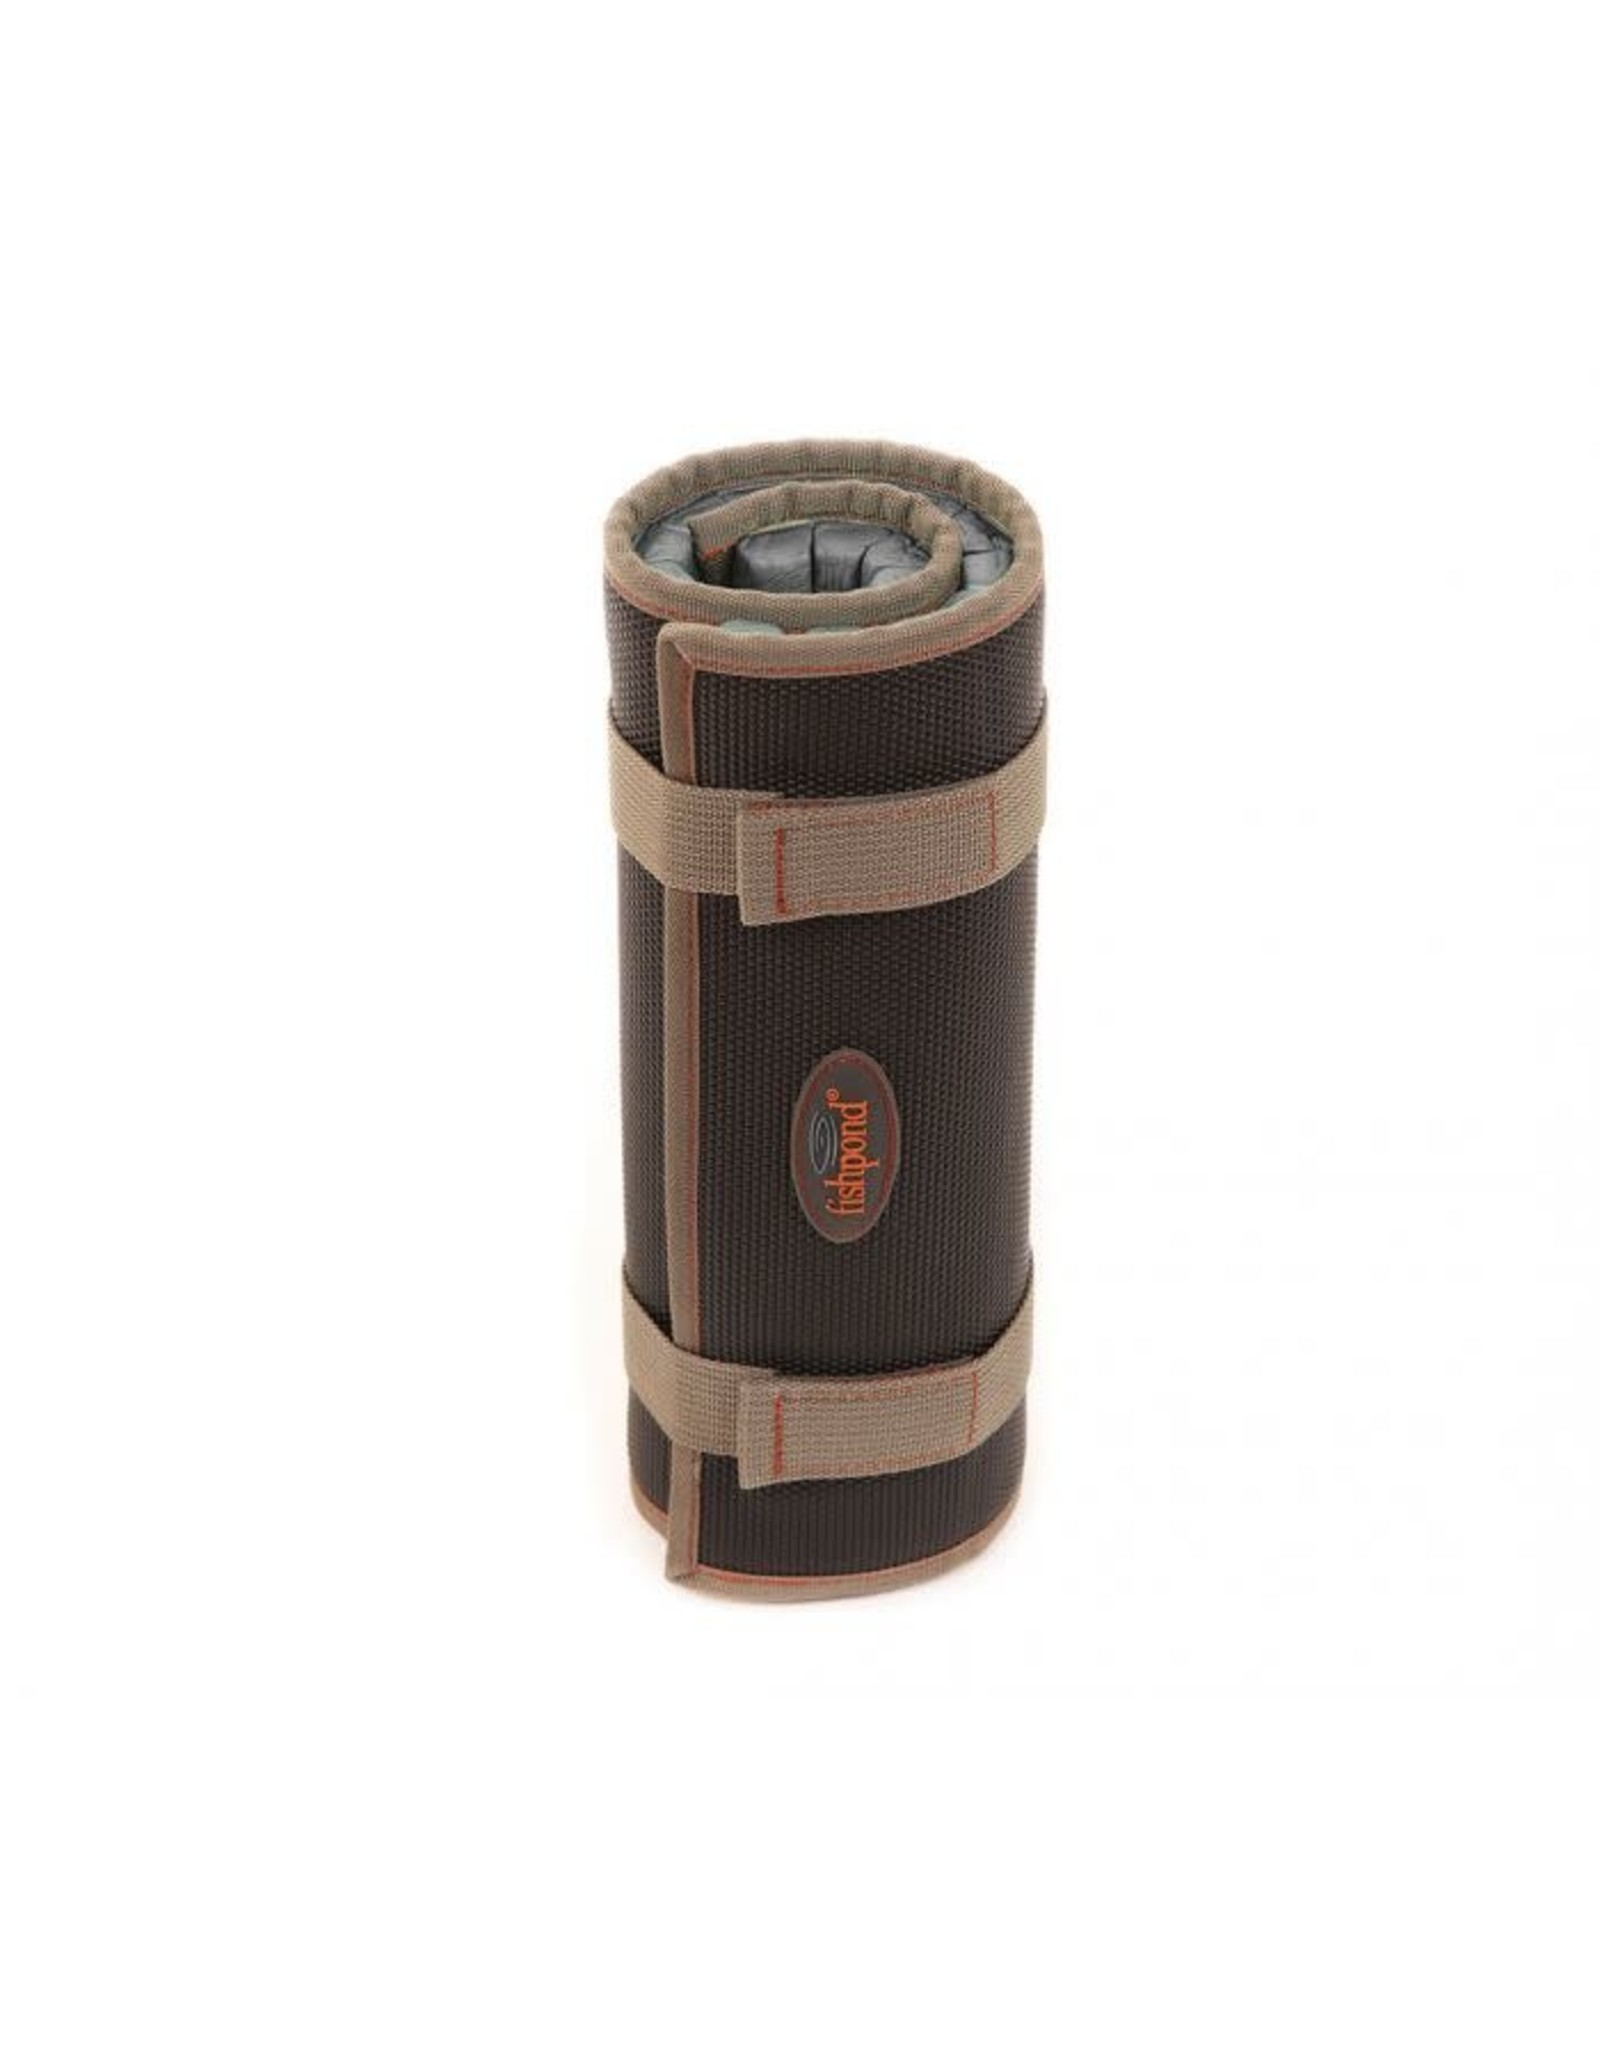 FISHPOND Fishpond Sushi Roll - Small